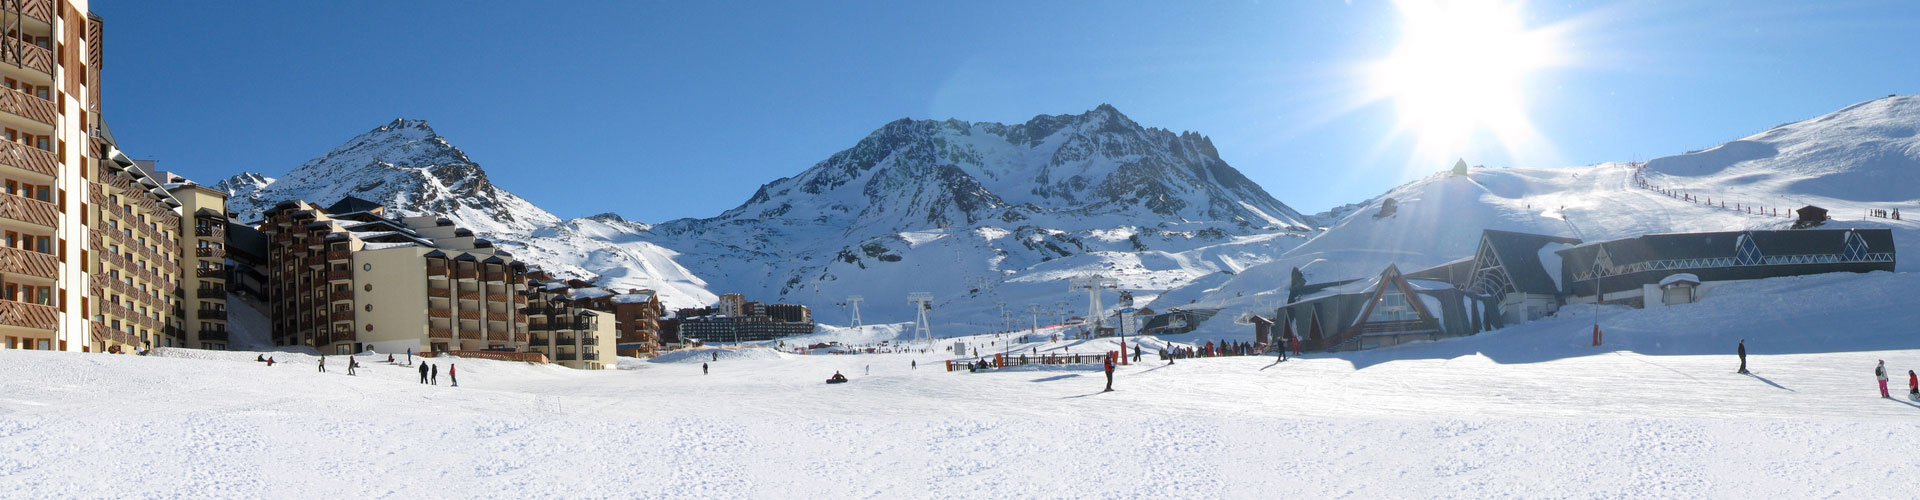 Val Thorens Centre, station de ski